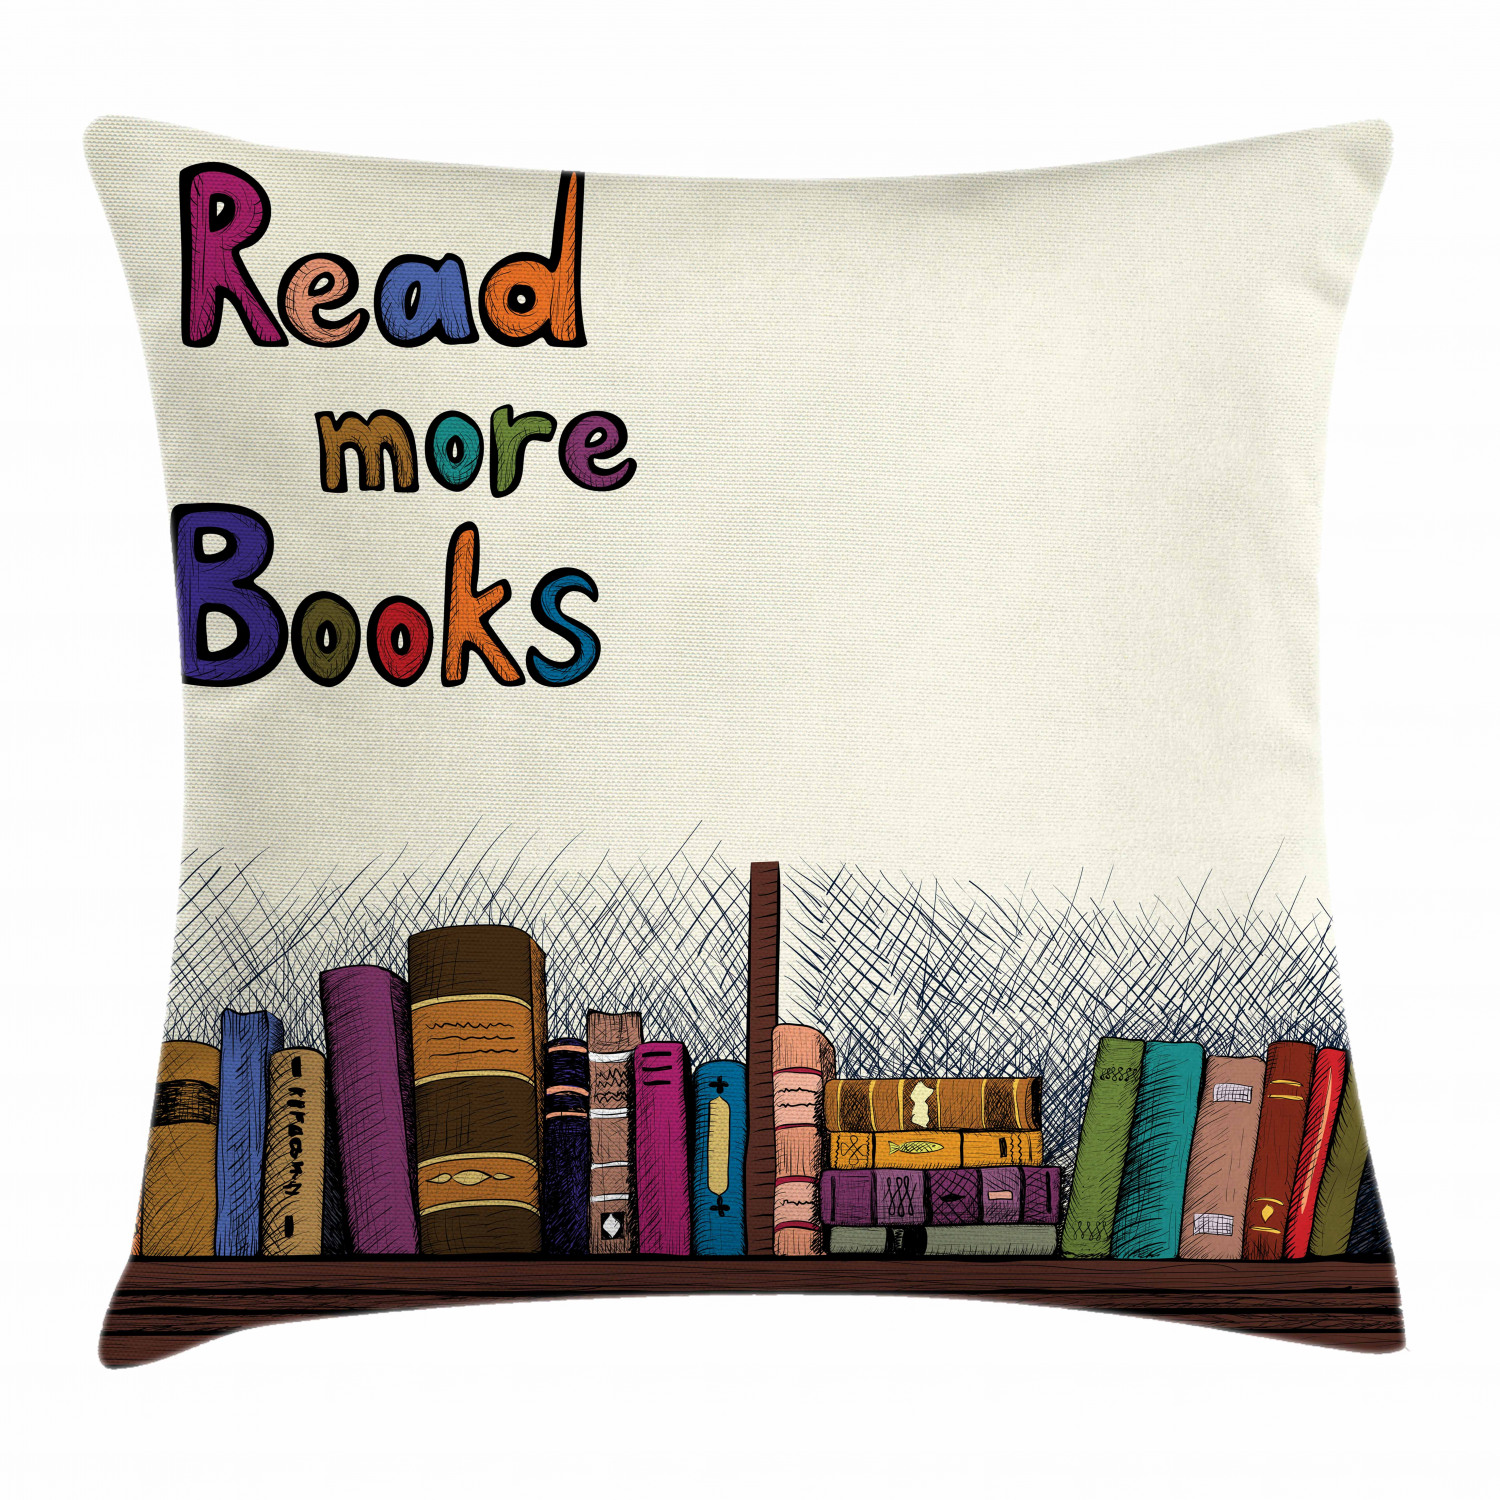 Book Throw Pillow Cushion Cover Read More Books Quote Printed On Sketch Background With Colorful Books On A Shelf Decorative Square Accent Pillow Case 16 X 16 Inches Multicolor By Ambesonne